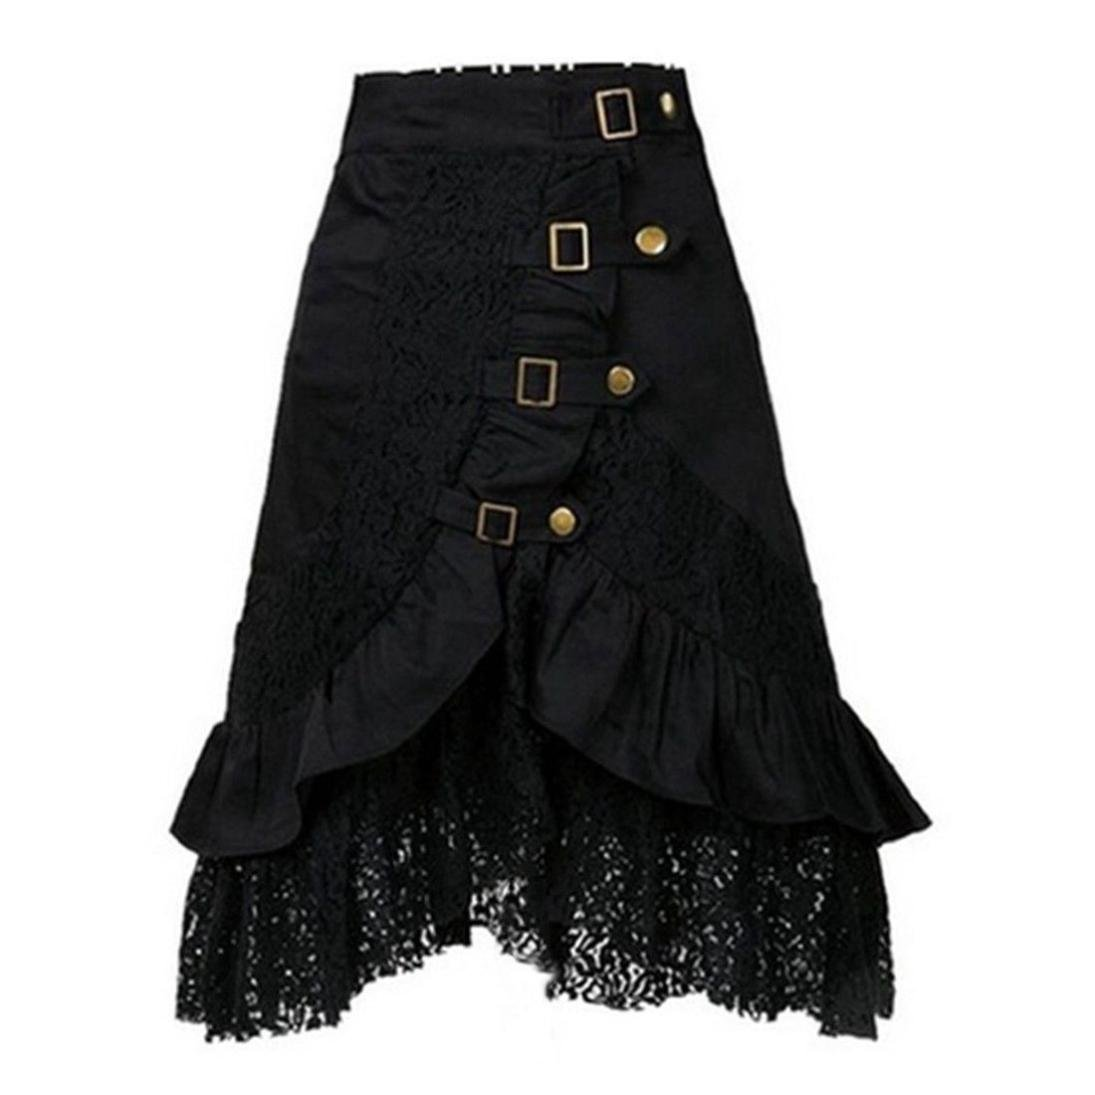 Women's Steampunk Skirt Party Club Wear Punk Gothic Retro Lace Dress Long Skirt